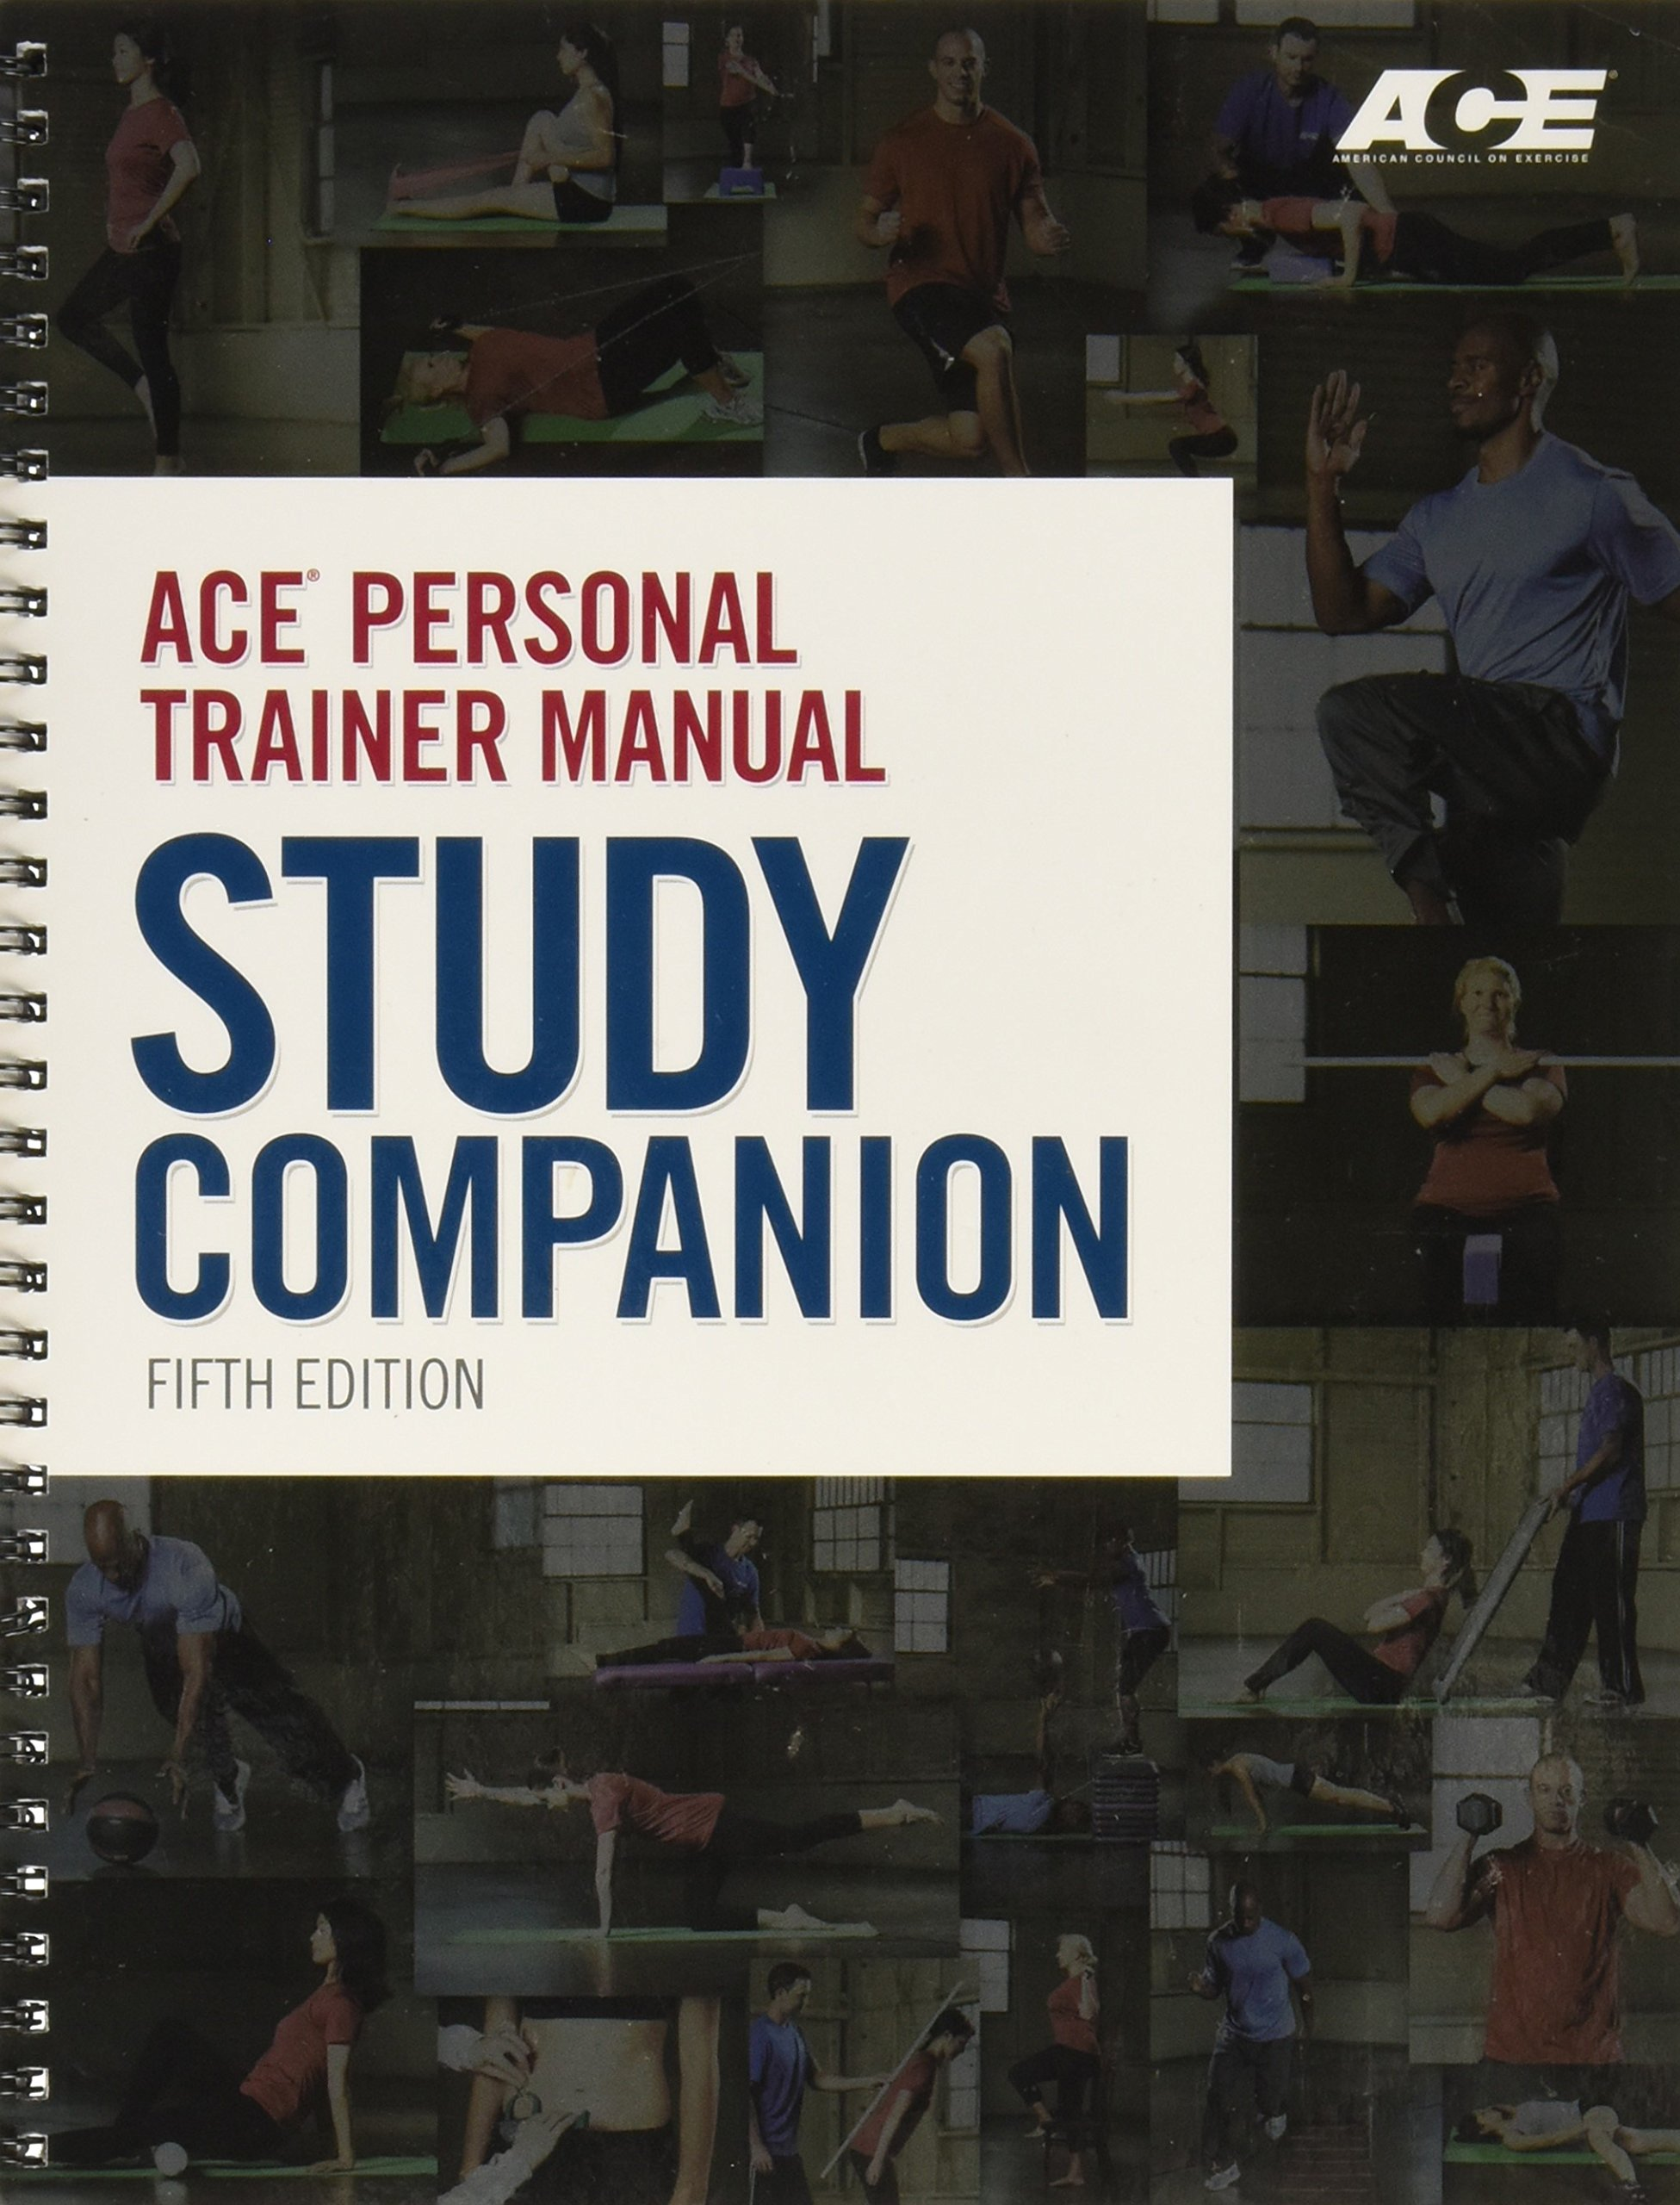 ace personal trainer manual study companion fifth edition american rh amazon com ace personal trainer manual audiobook Ace Personal Trainer Body